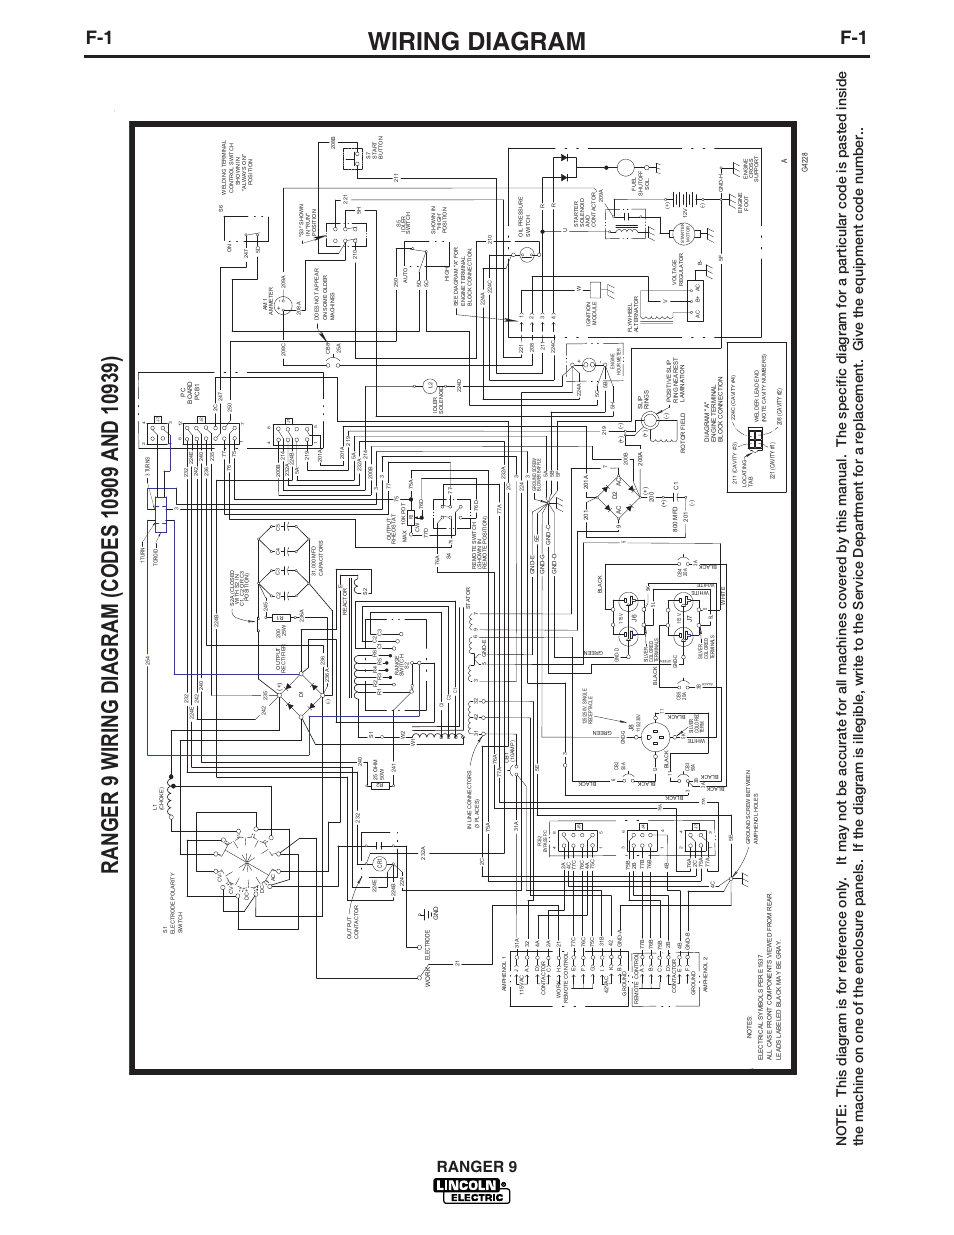 Wiring Diagram Ranger 9 Lincoln Electric Im753 User John Deere 245 Manual Page 33 44